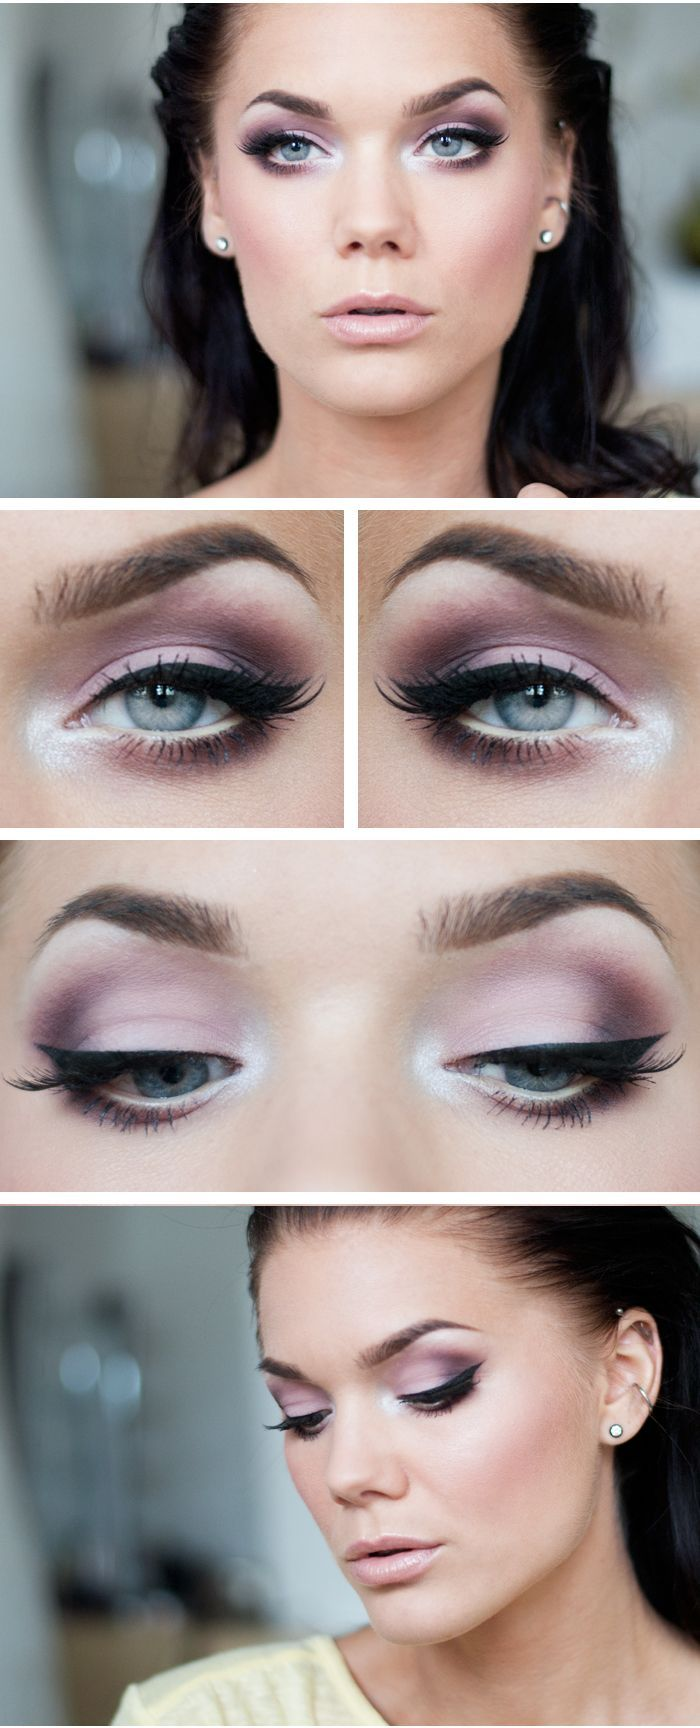 Hochzeit ♡ Wedding ♡ Trauzeugin ♡ Bridesmaid ♡ Make Up ♡ Augen ♡ Eyes